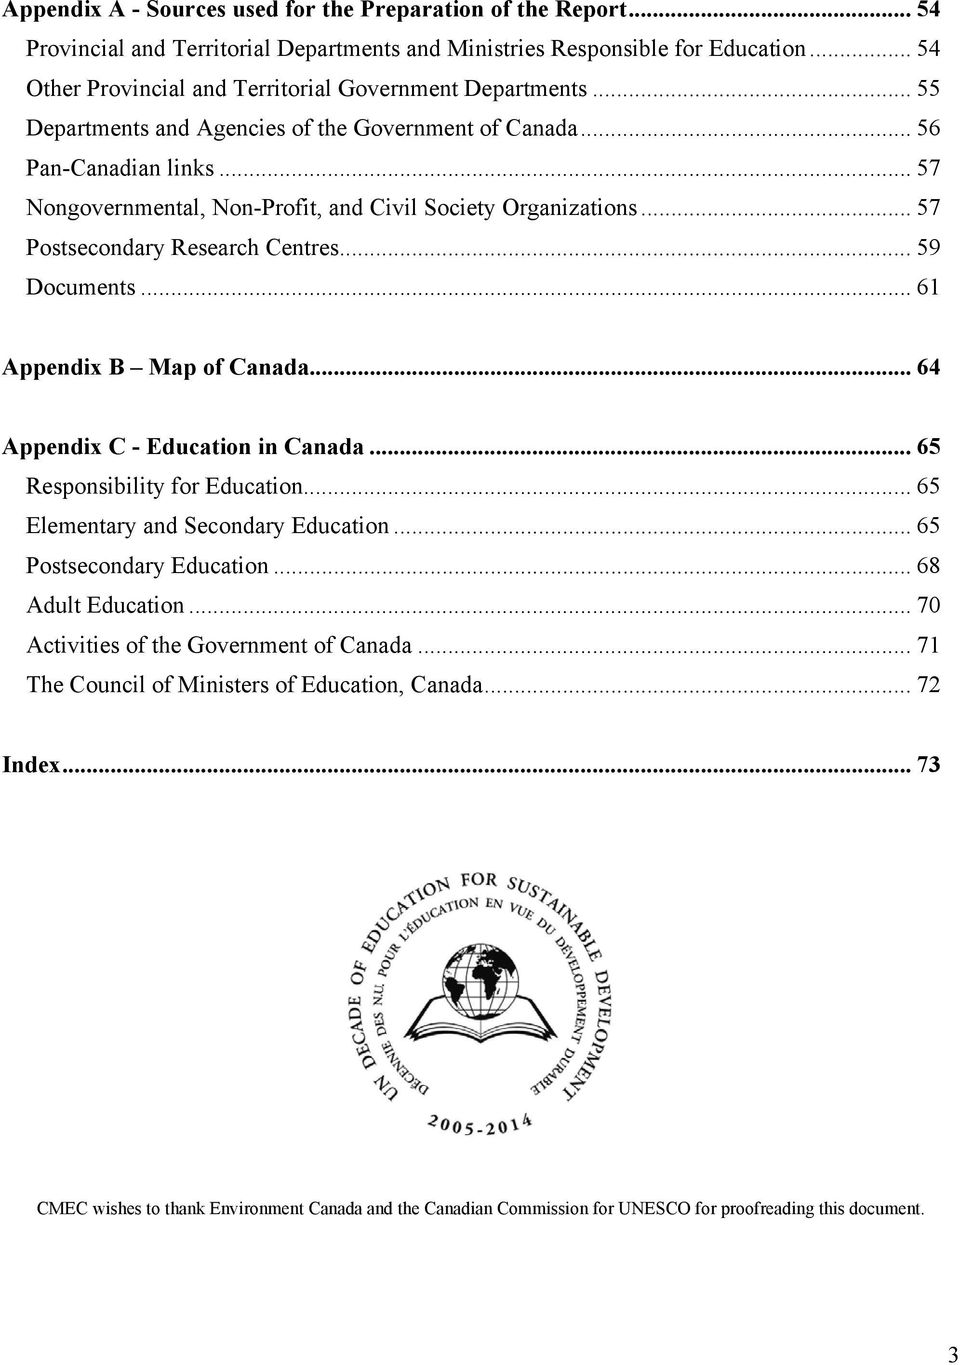 .. 57 Nongovernmental, Non-Profit, and Civil Society Organizations... 57 Postsecondary Research Centres... 59 Documents... 61 Appendix B Map of Canada... 64 Appendix C - Education in Canada.